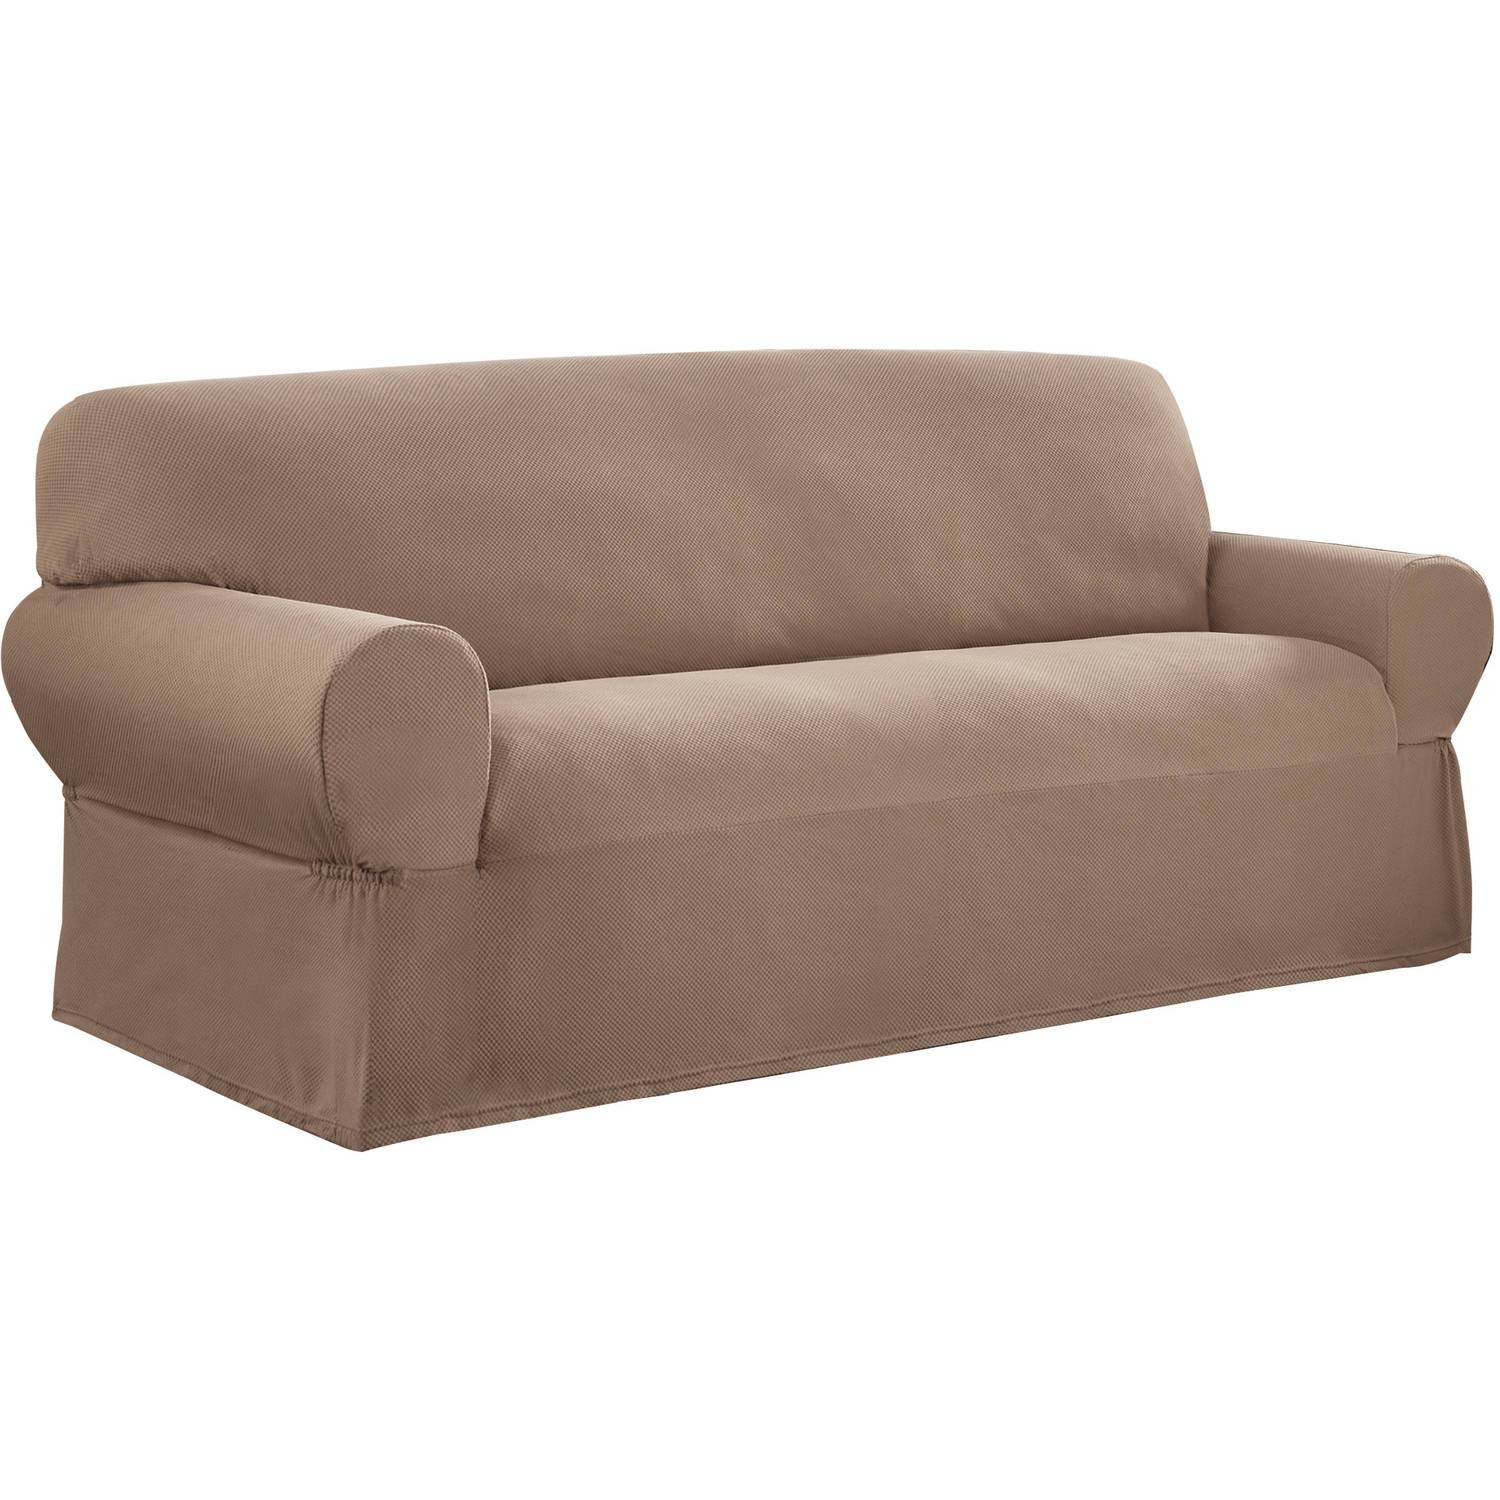 Slipcovers - Walmart pertaining to Sofas With High Backs (Image 23 of 30)